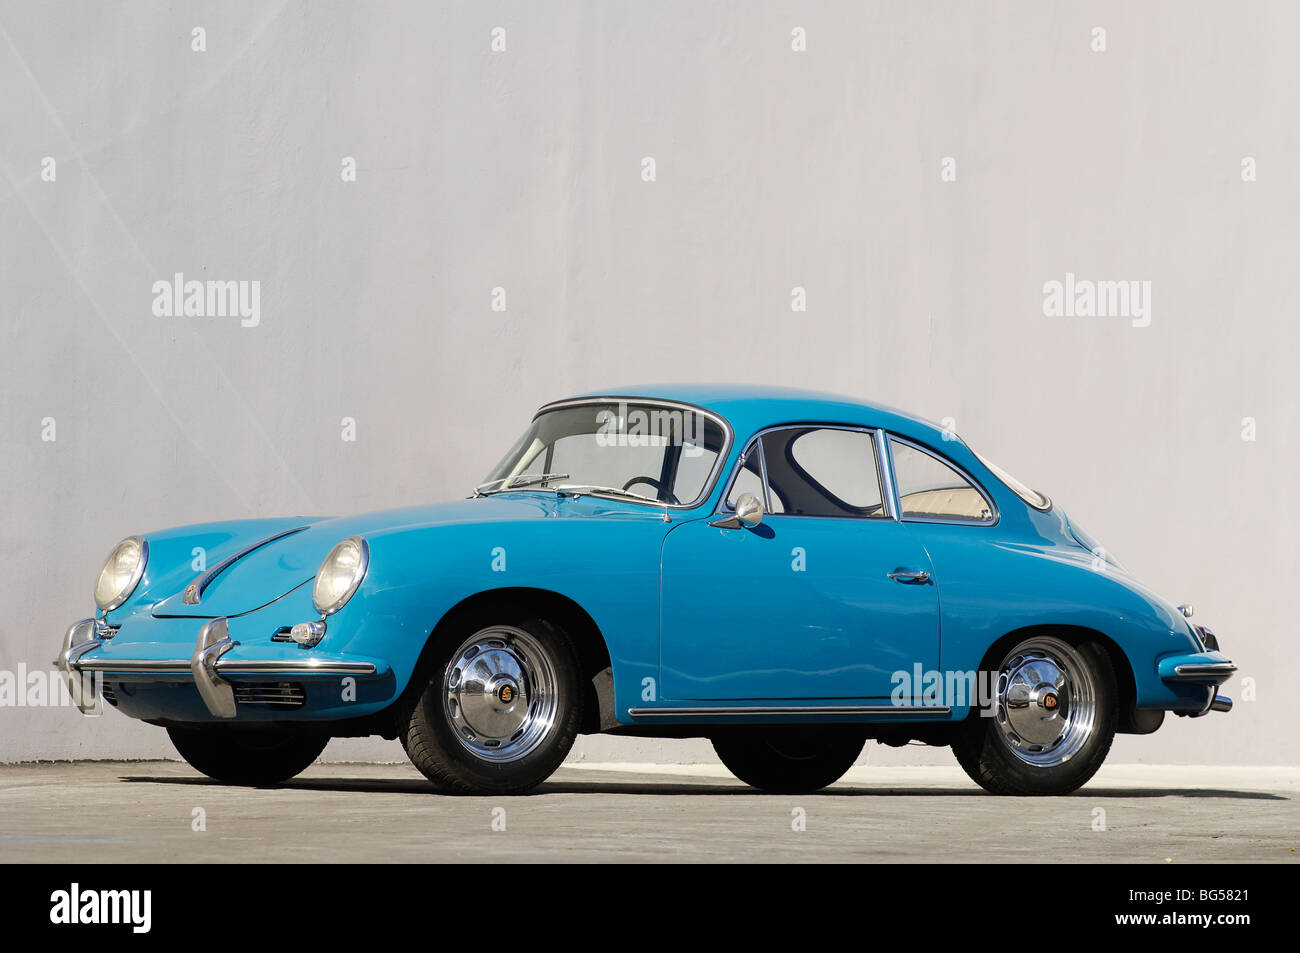 1963 Porsche 356b cope, front 3/4 view plain background in blue - Stock Image